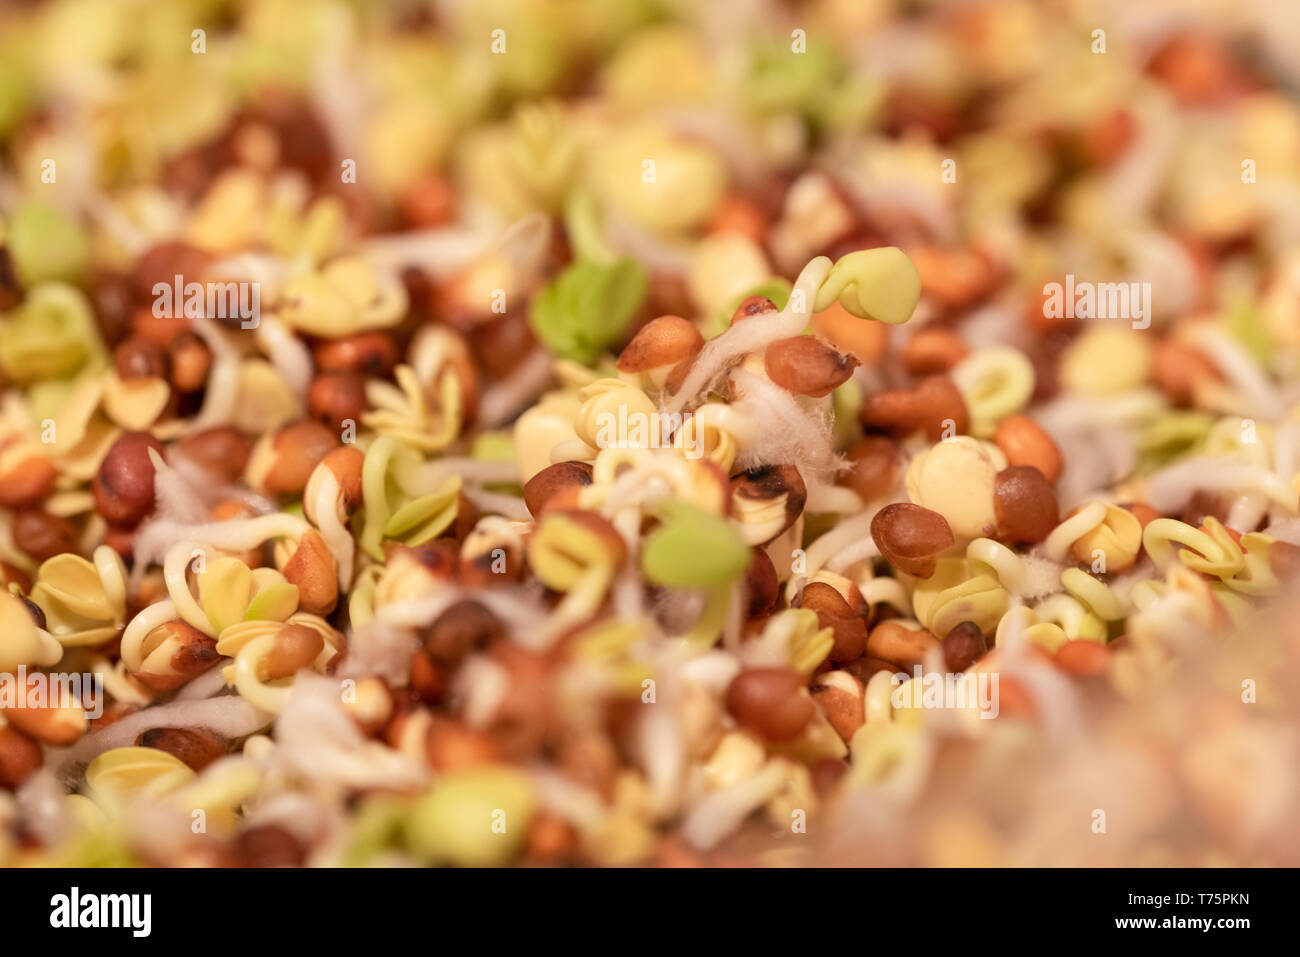 Edible germs in brown shells with green leaves macro Stock Photo